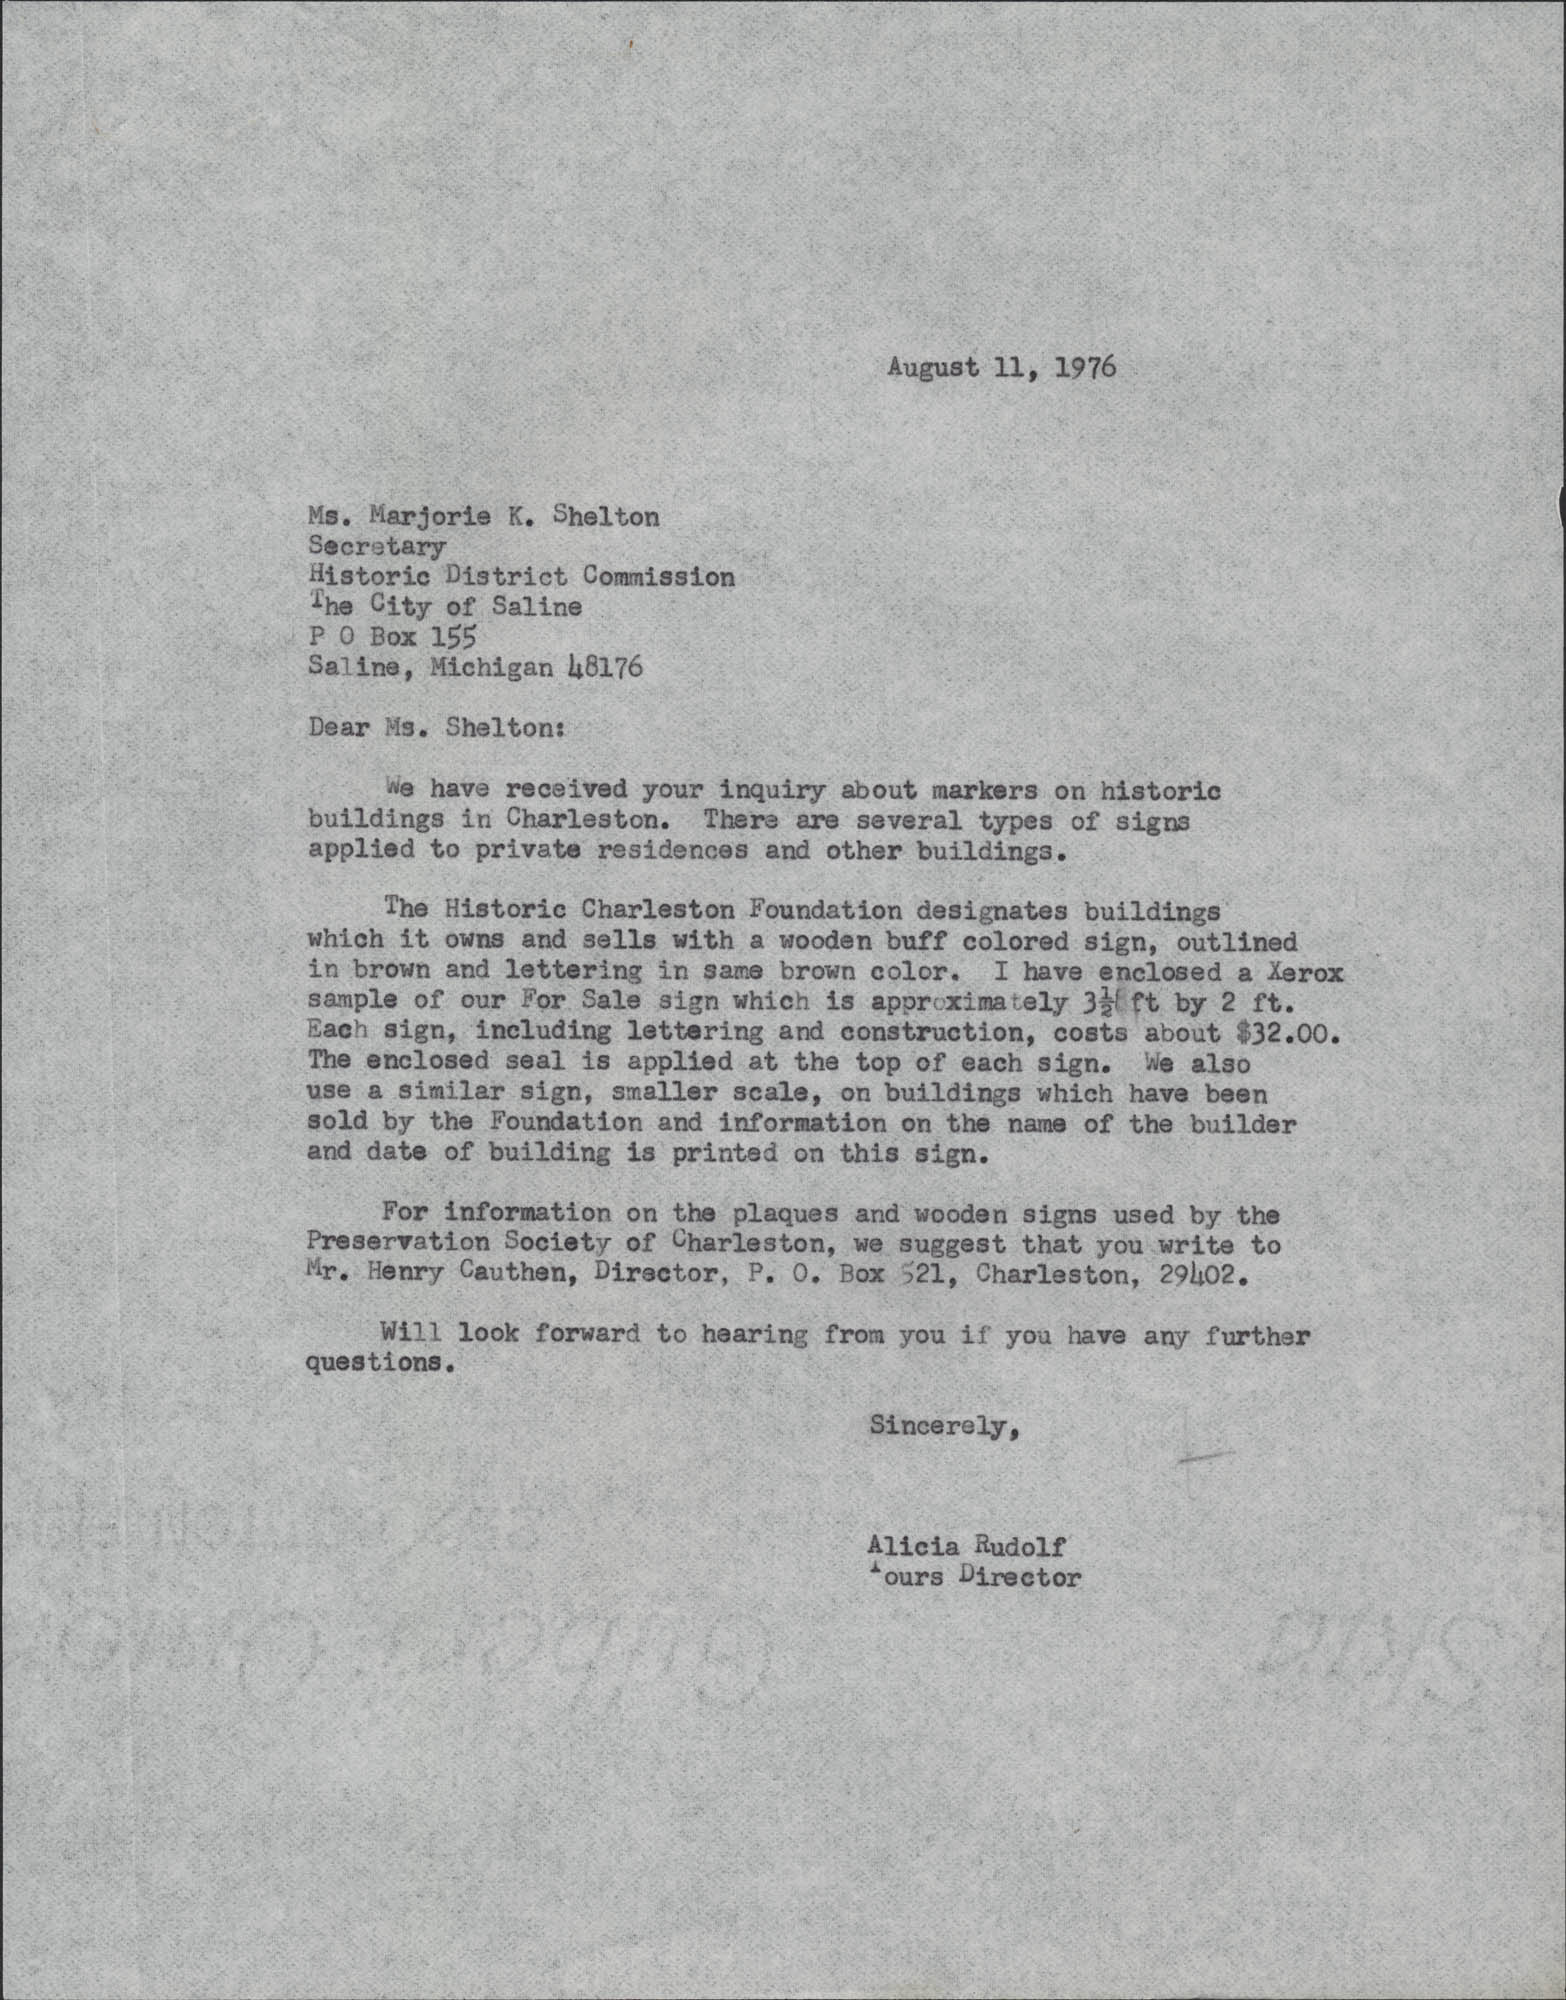 Letter from Alicia Rudolf to Marjorie K. Shelton